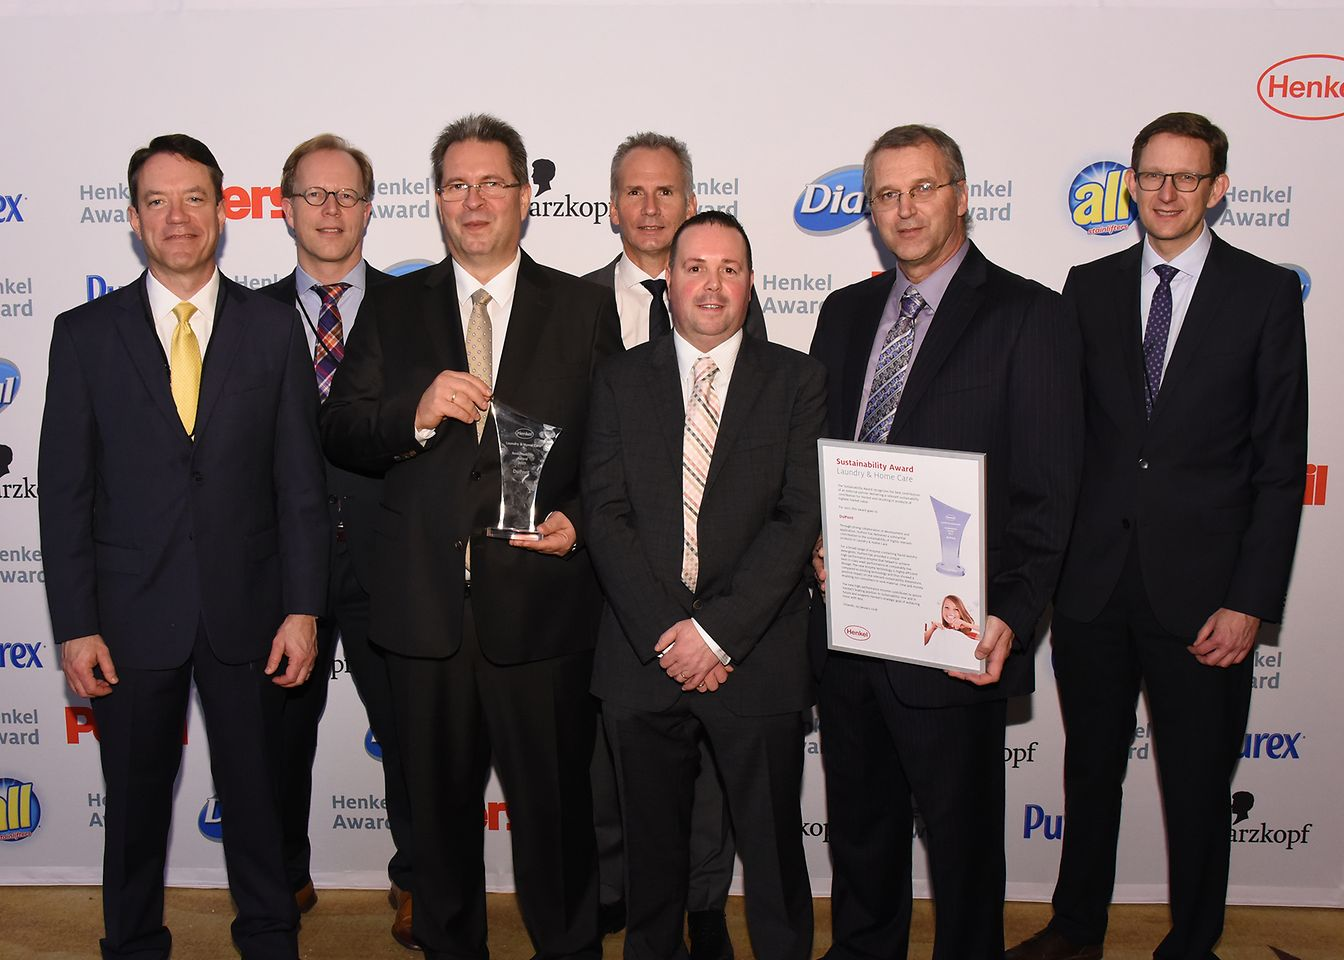 Sustainability Award Laundry & Home Care / DuPont (winner): William F. Feehery, Arjen Hoekstra, Markus Scharf, Joop van der Laan, Wayne Ashton, Frans van Gastel, Michael Dreja